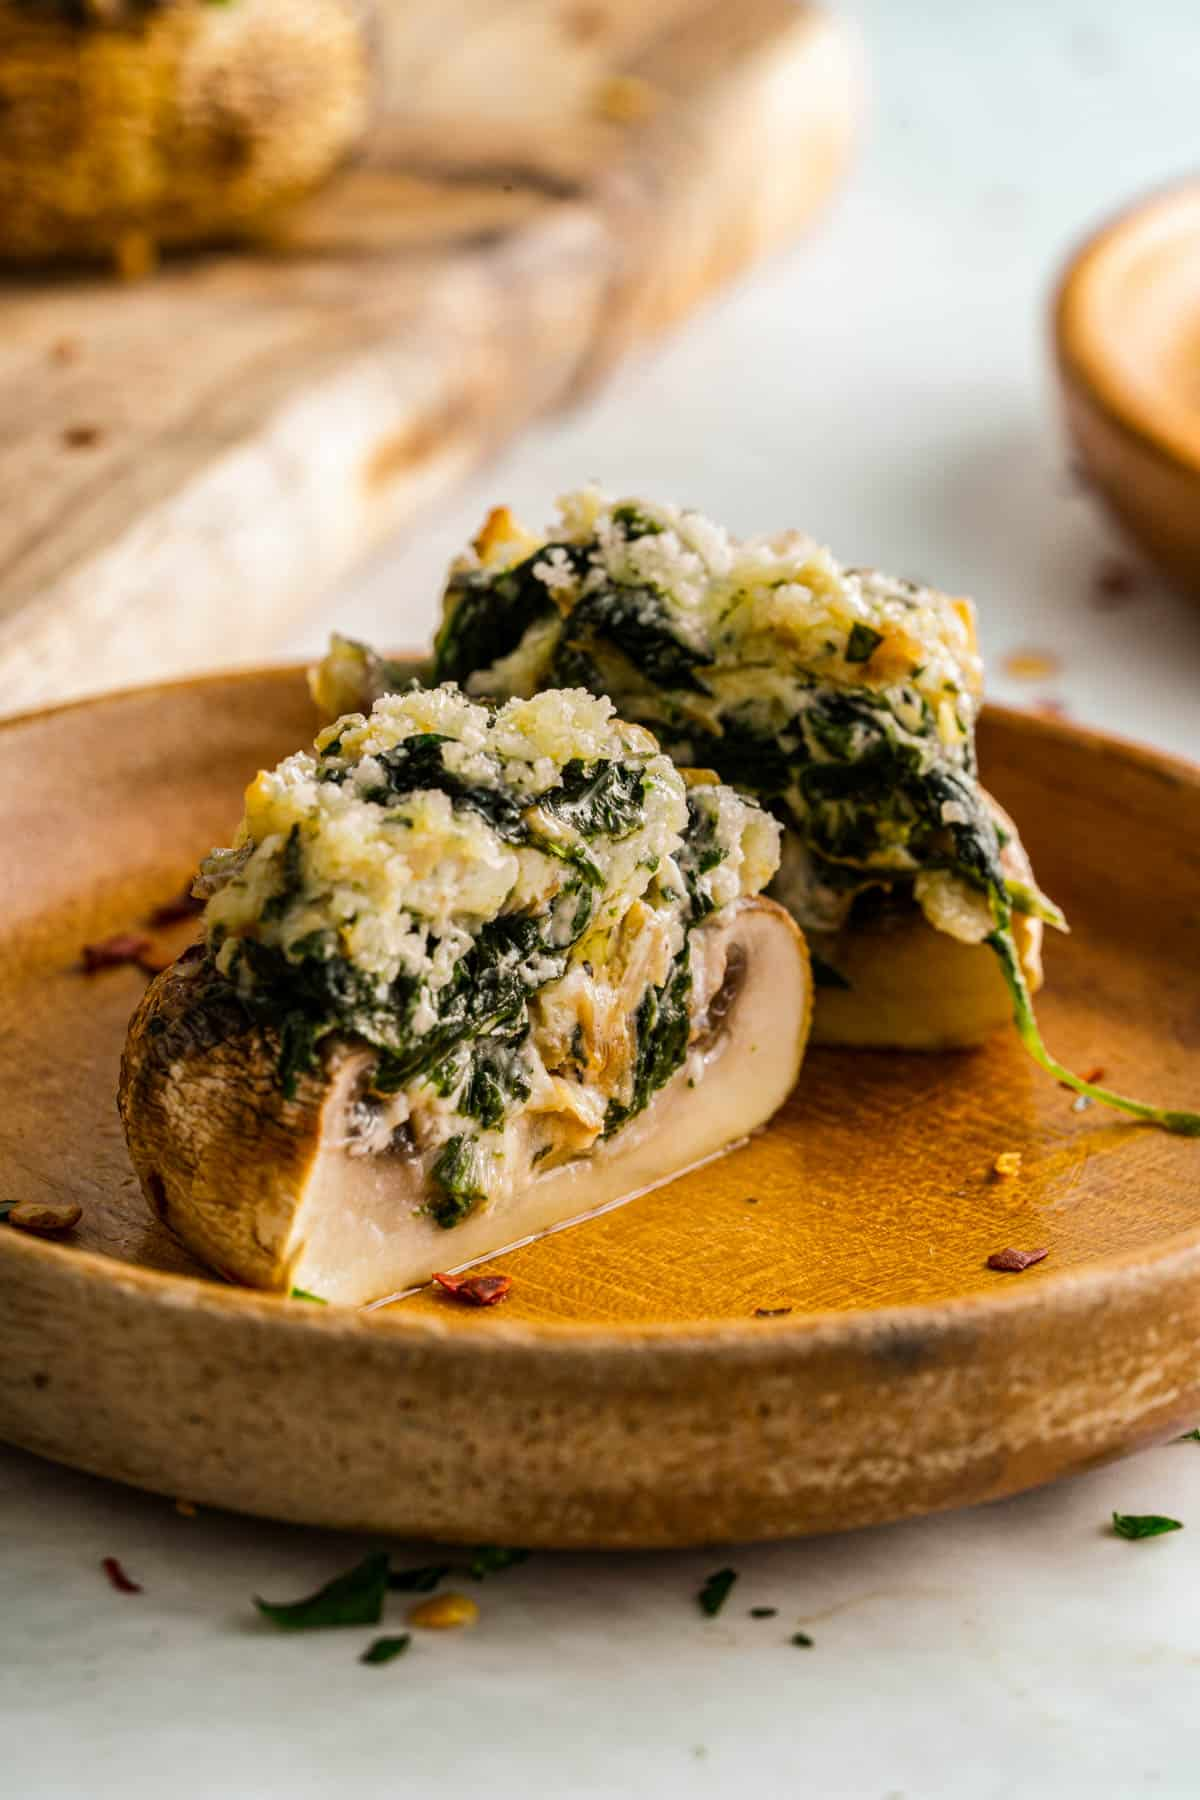 creamy spinach stuffed mushroom cut open stuffed with cream cheese and parmesan